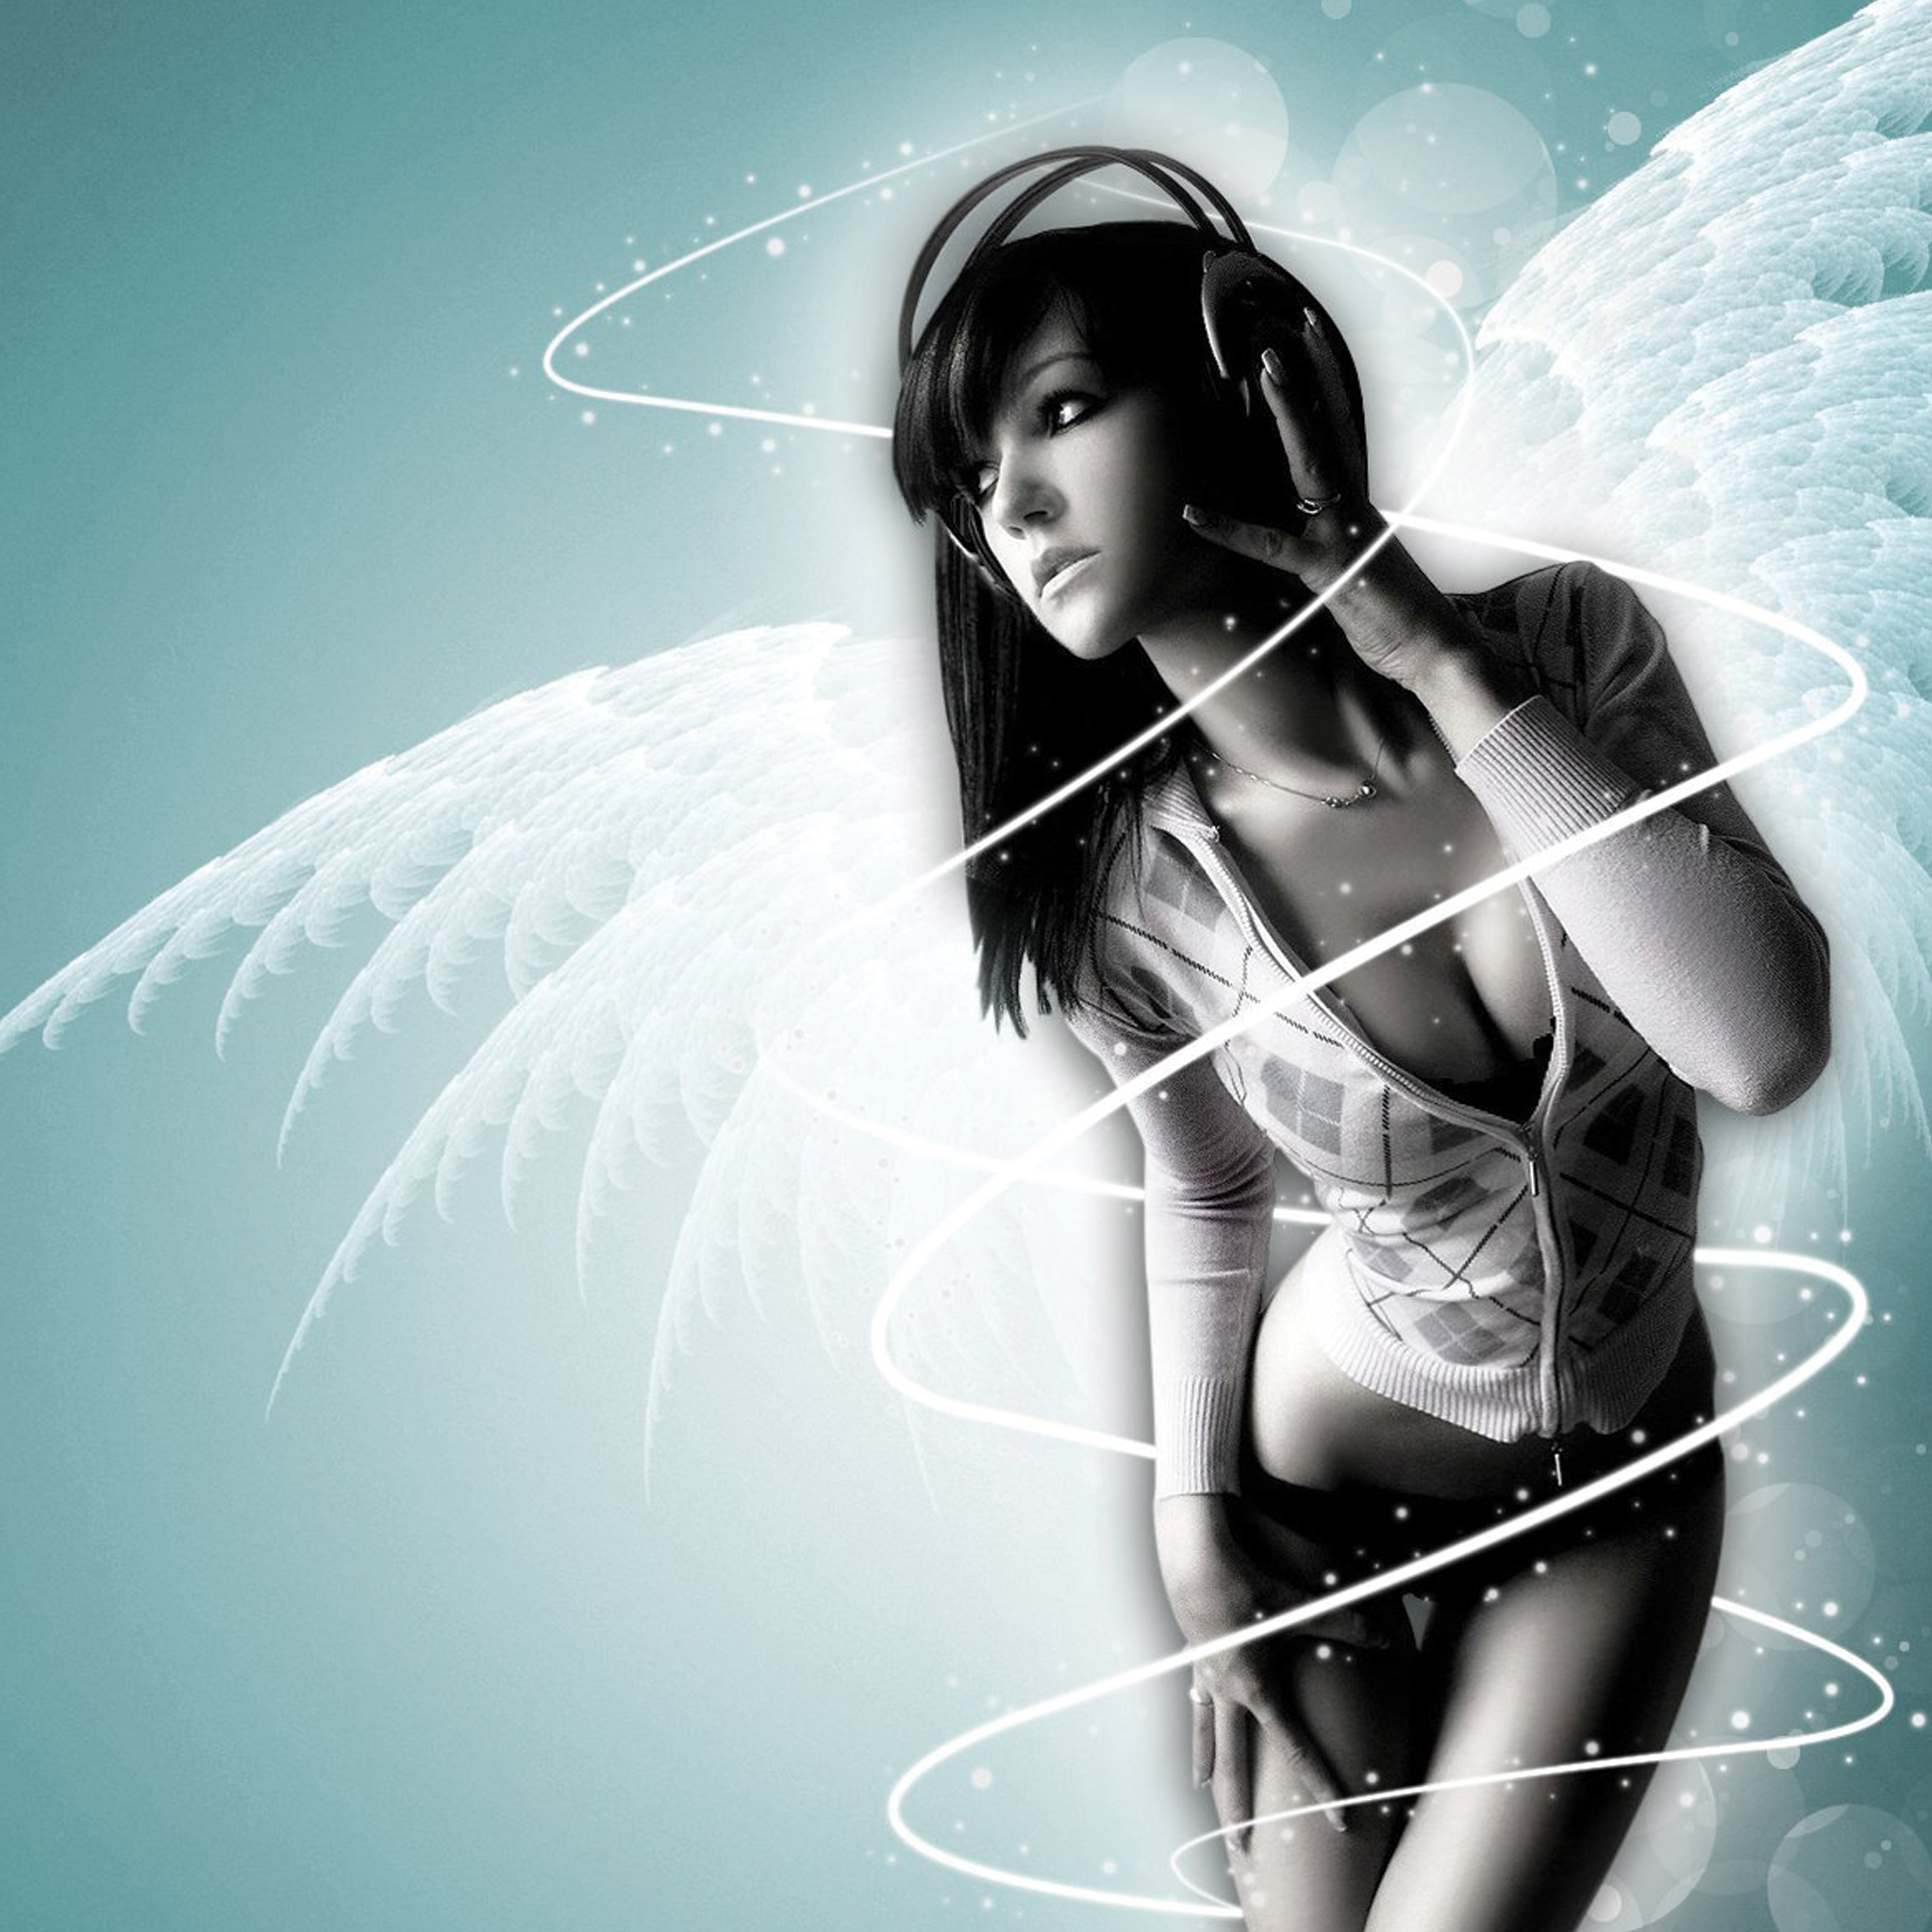 Angel-Girl-Music-3Wallpapers-iPad-Retina